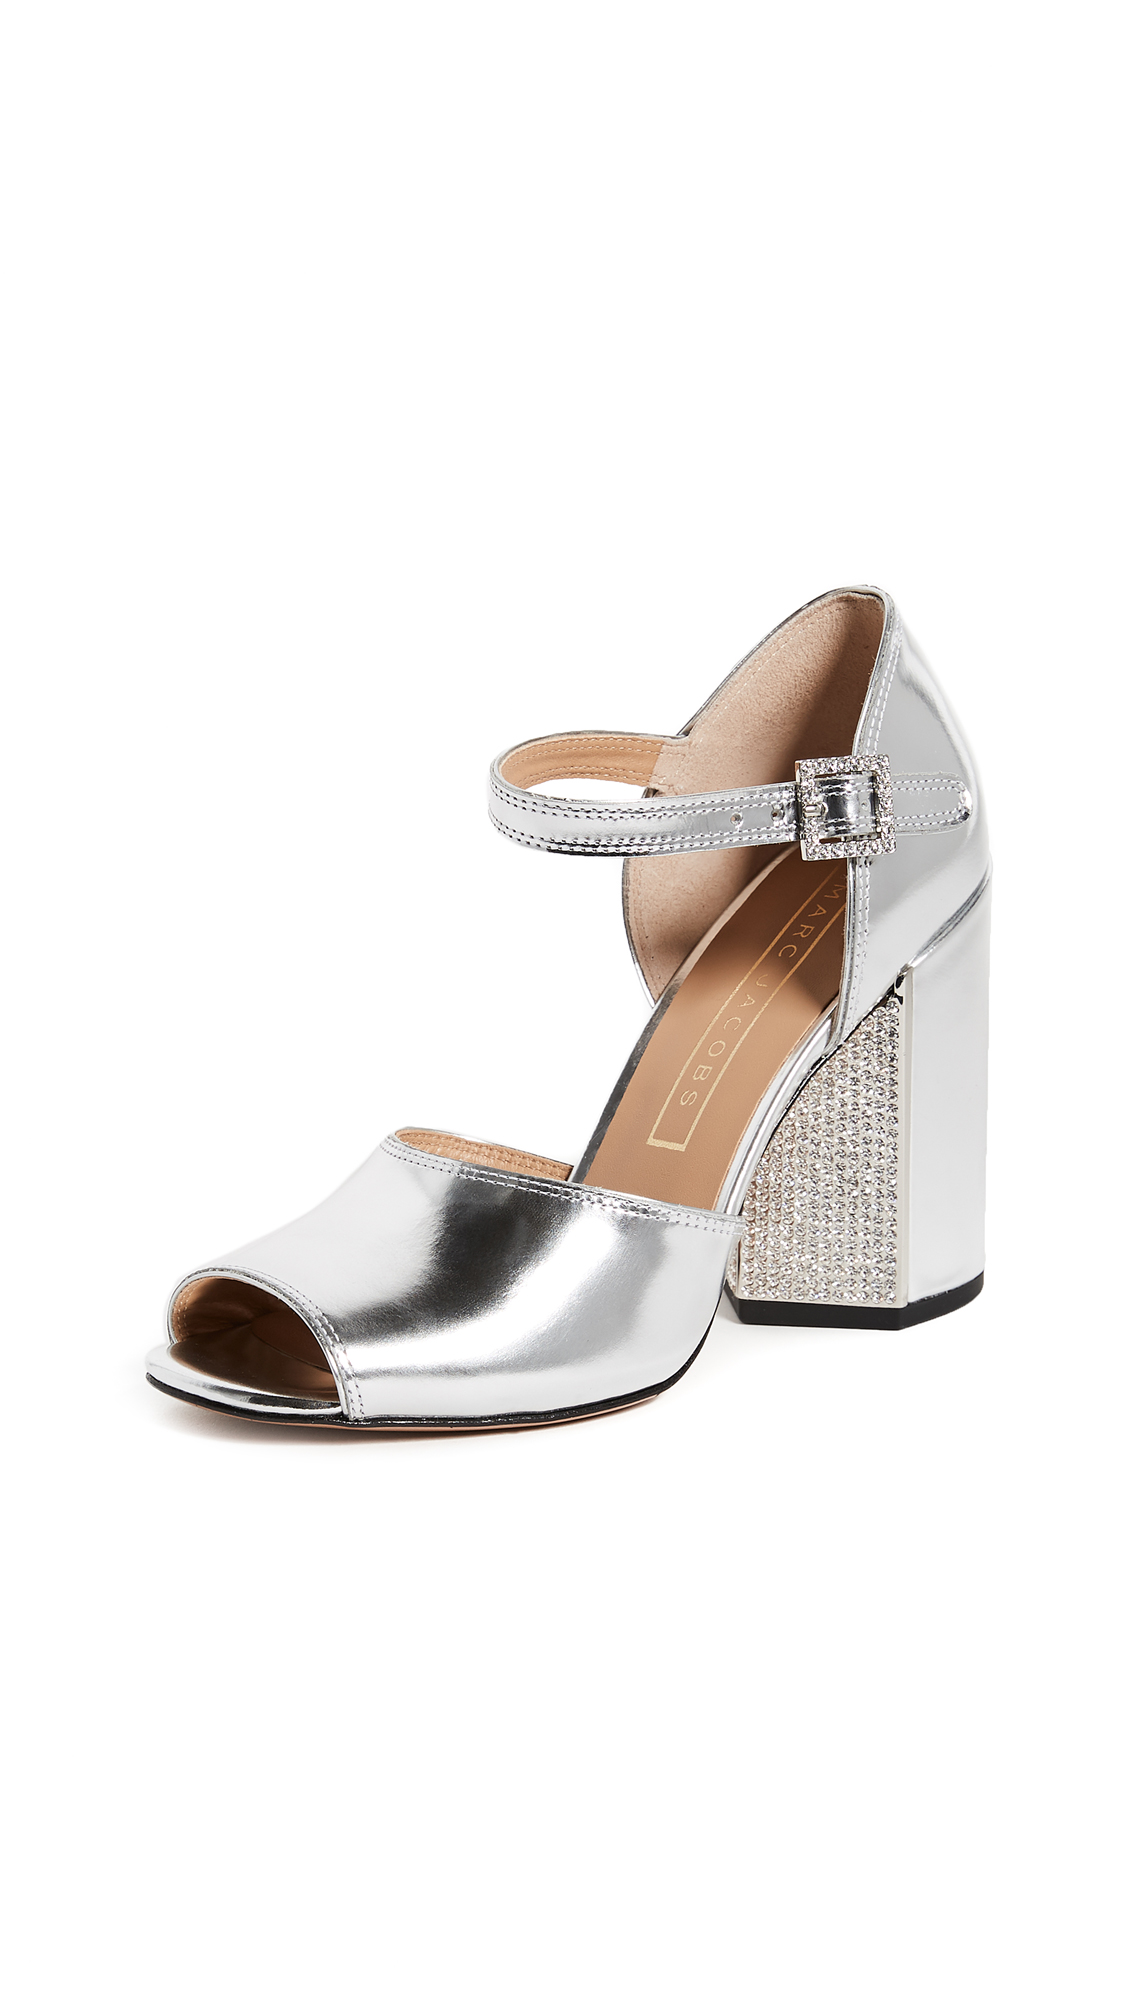 Marc Jacobs Kasia Strass Sandals - Silver